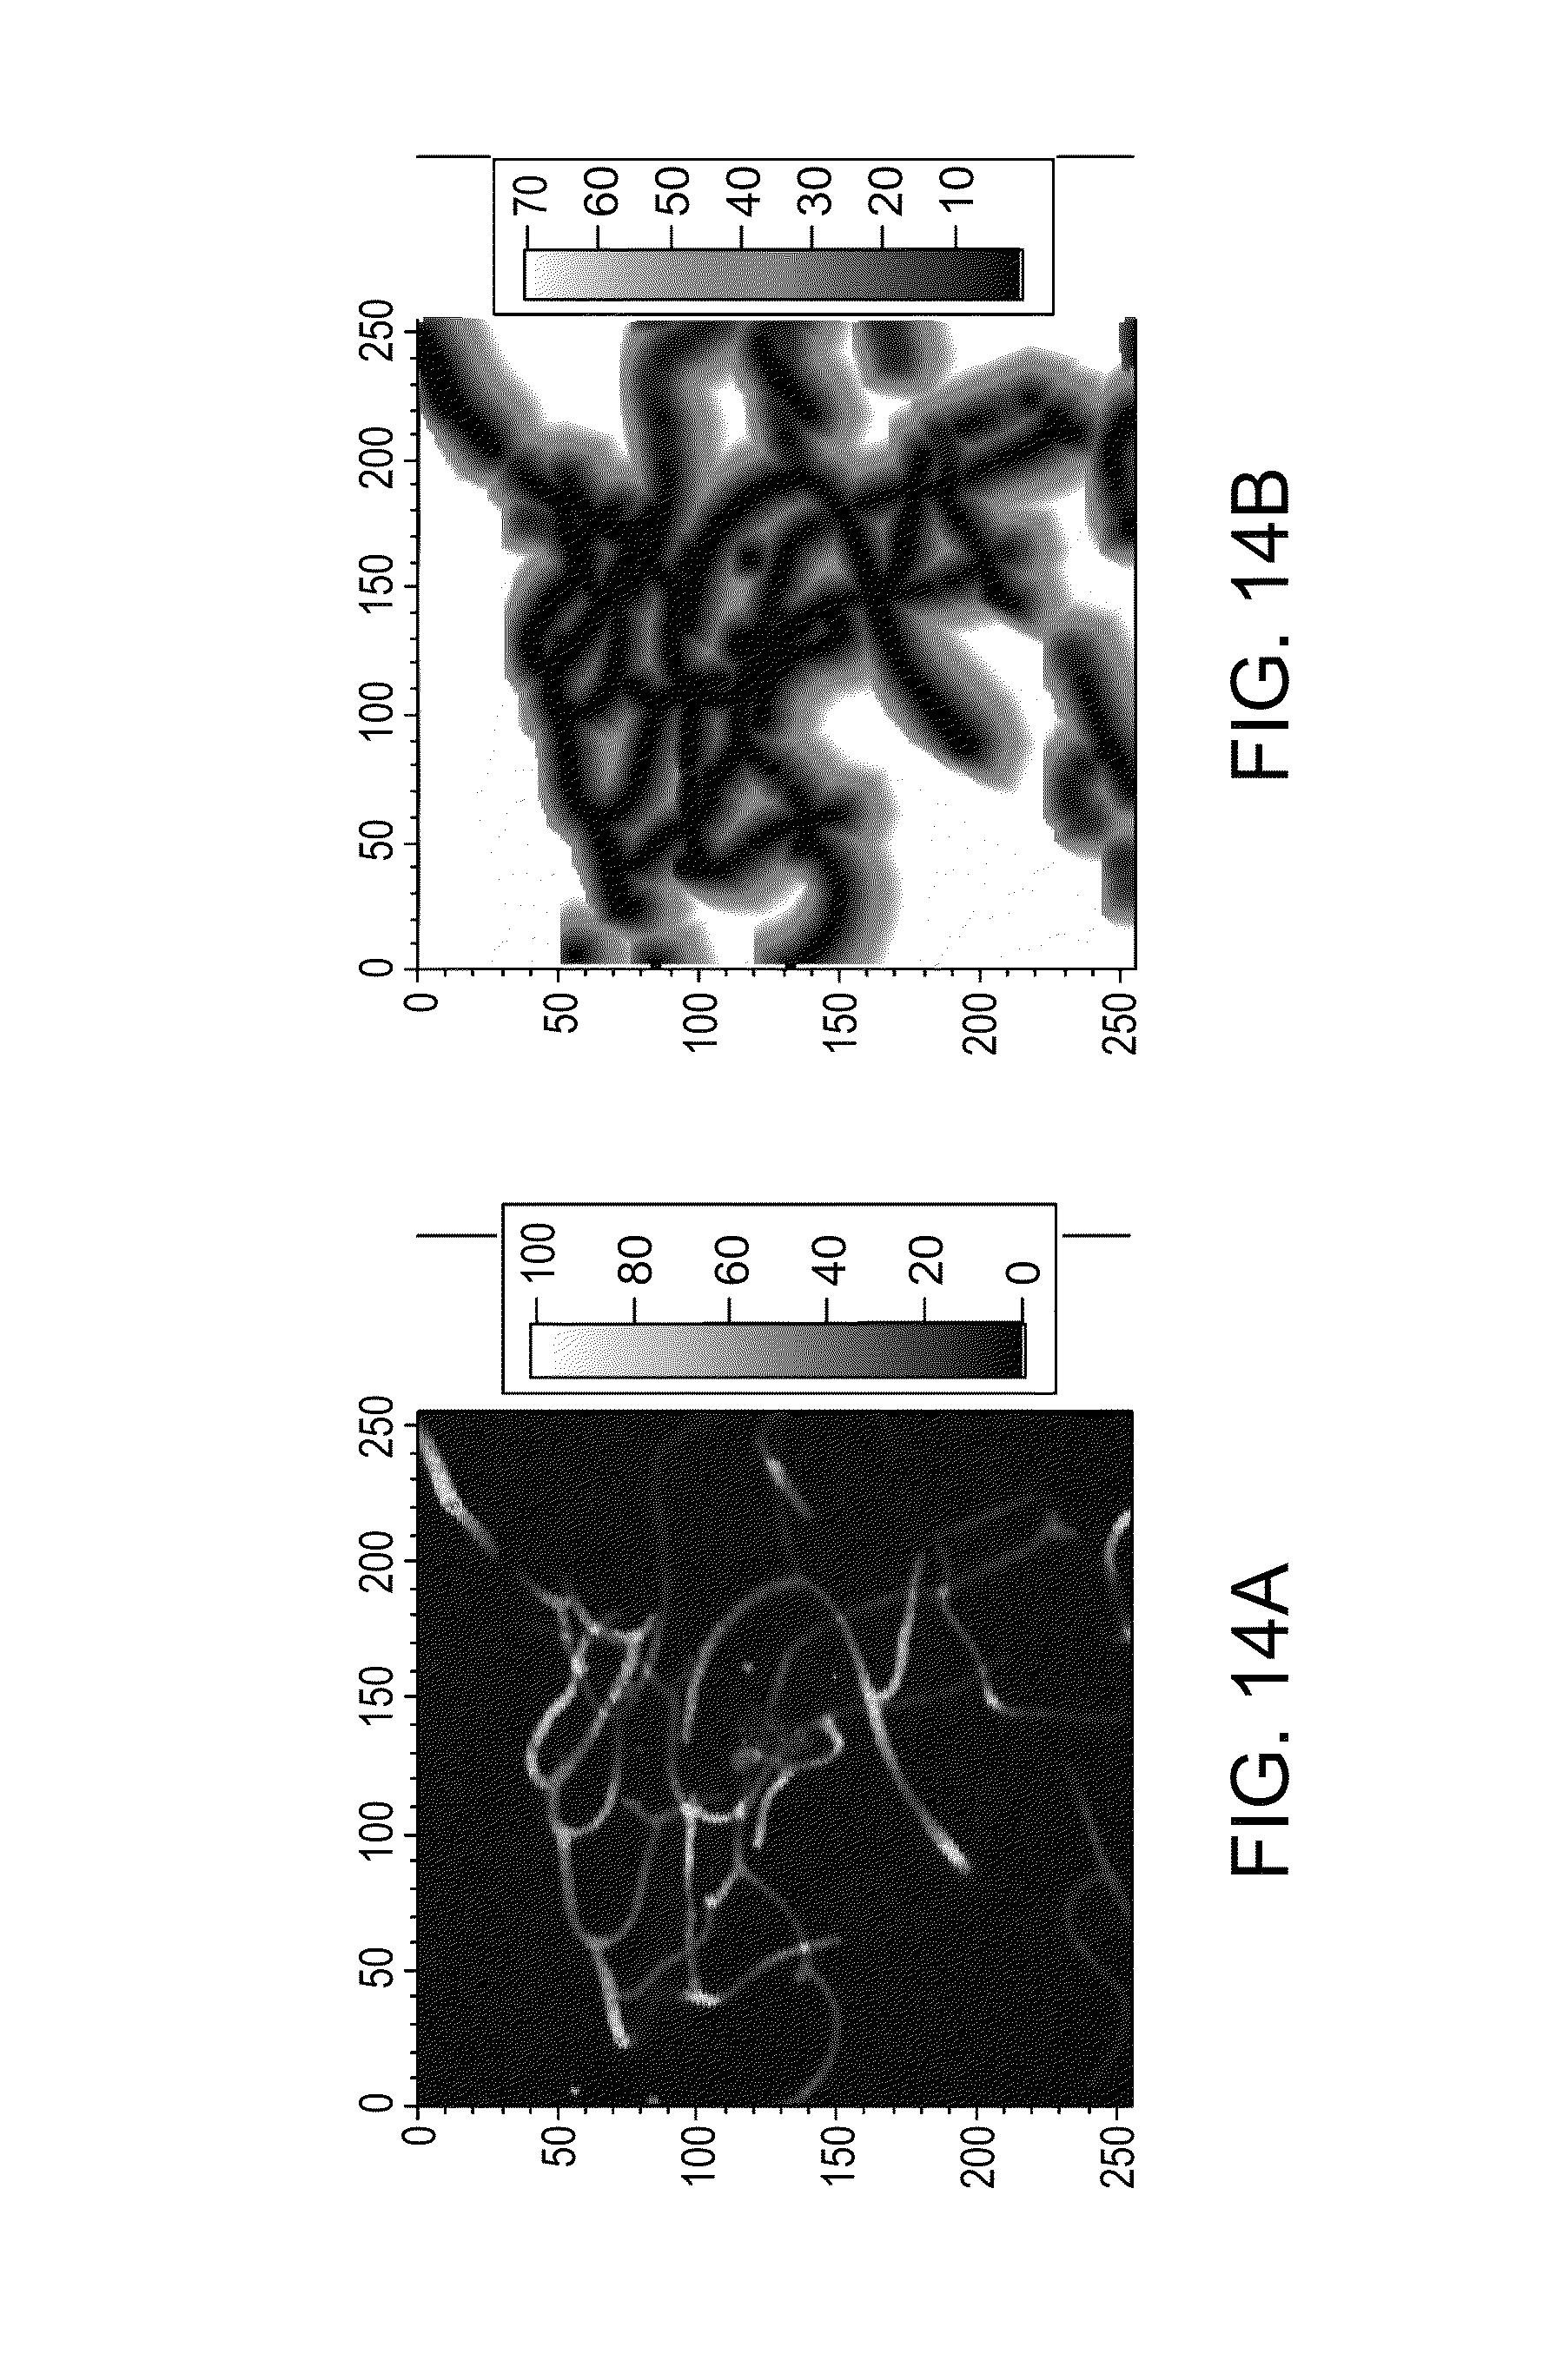 US8771978B2 Systems and methods for imaging